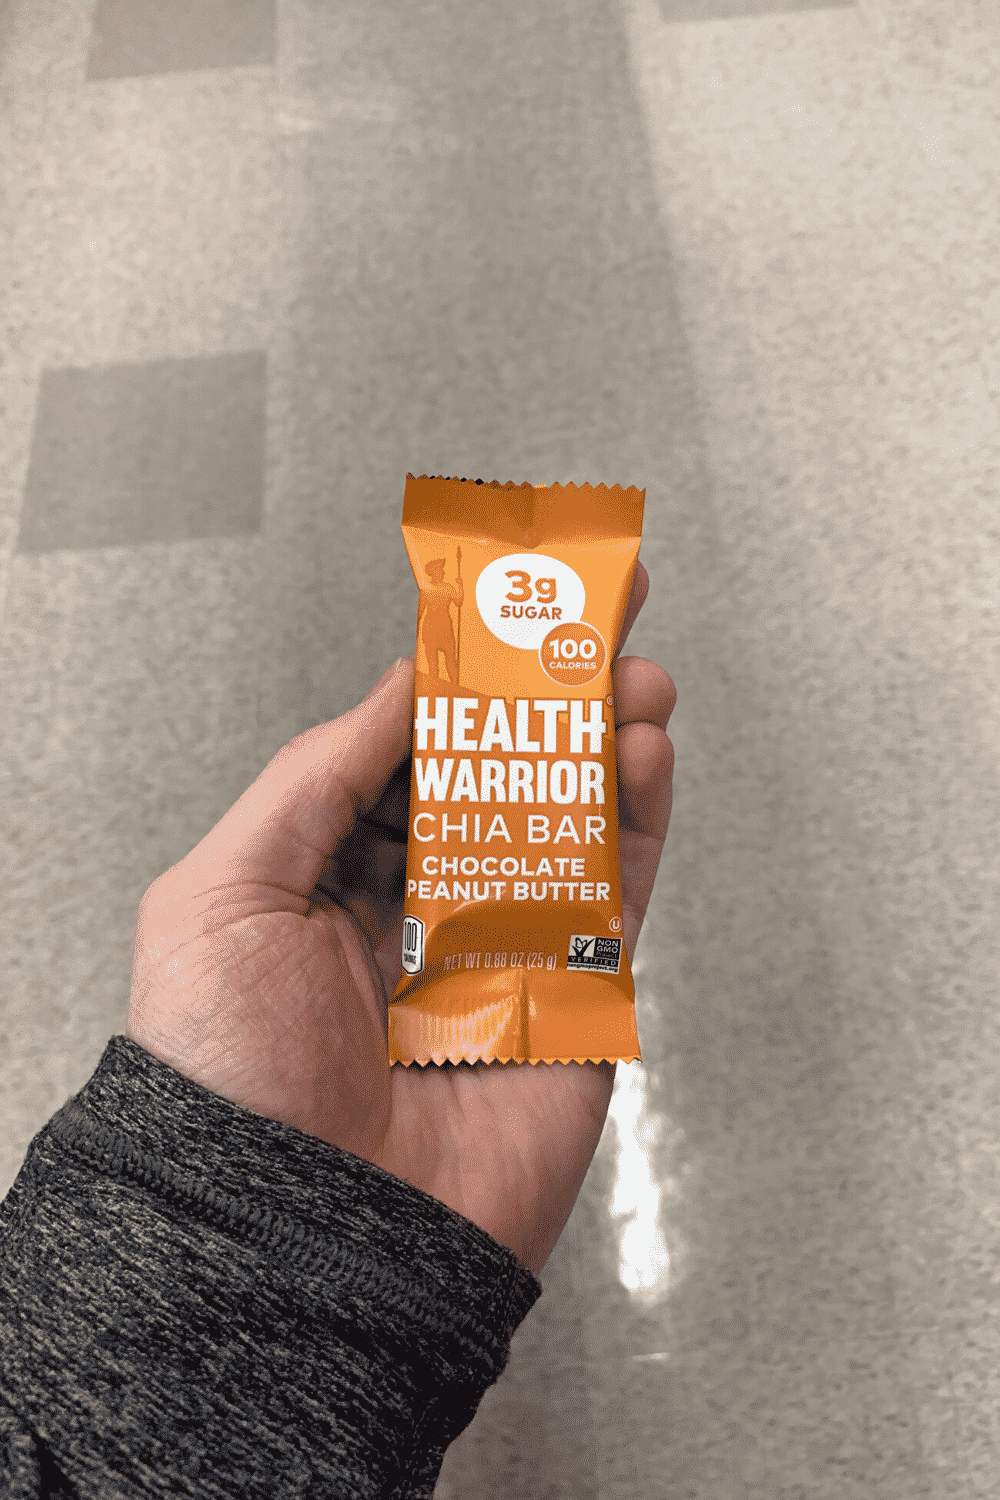 A hand holding a wrapped chocolate peanut butter Health Warrior Chia Bar